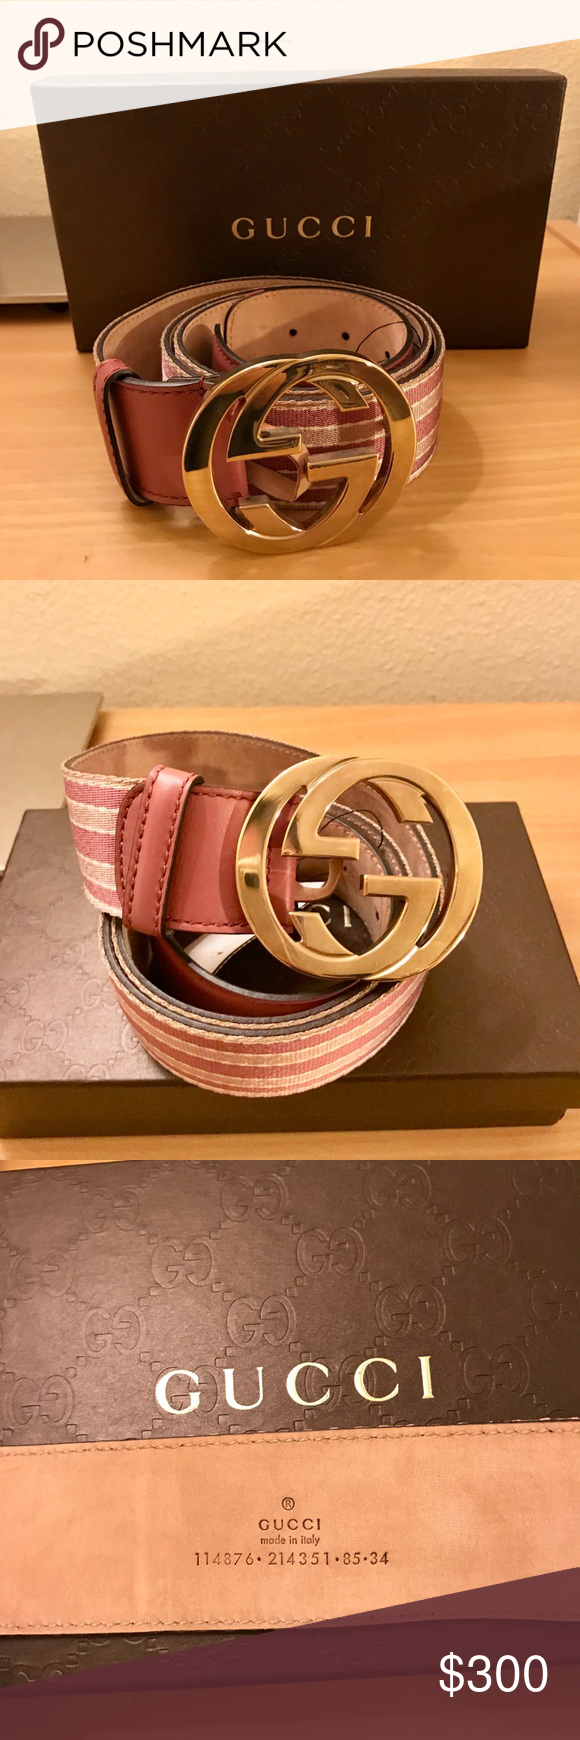 db81e808f1f Gucci belt Pink web canvas leather belt interlocking G buckles pink light  pink webbing